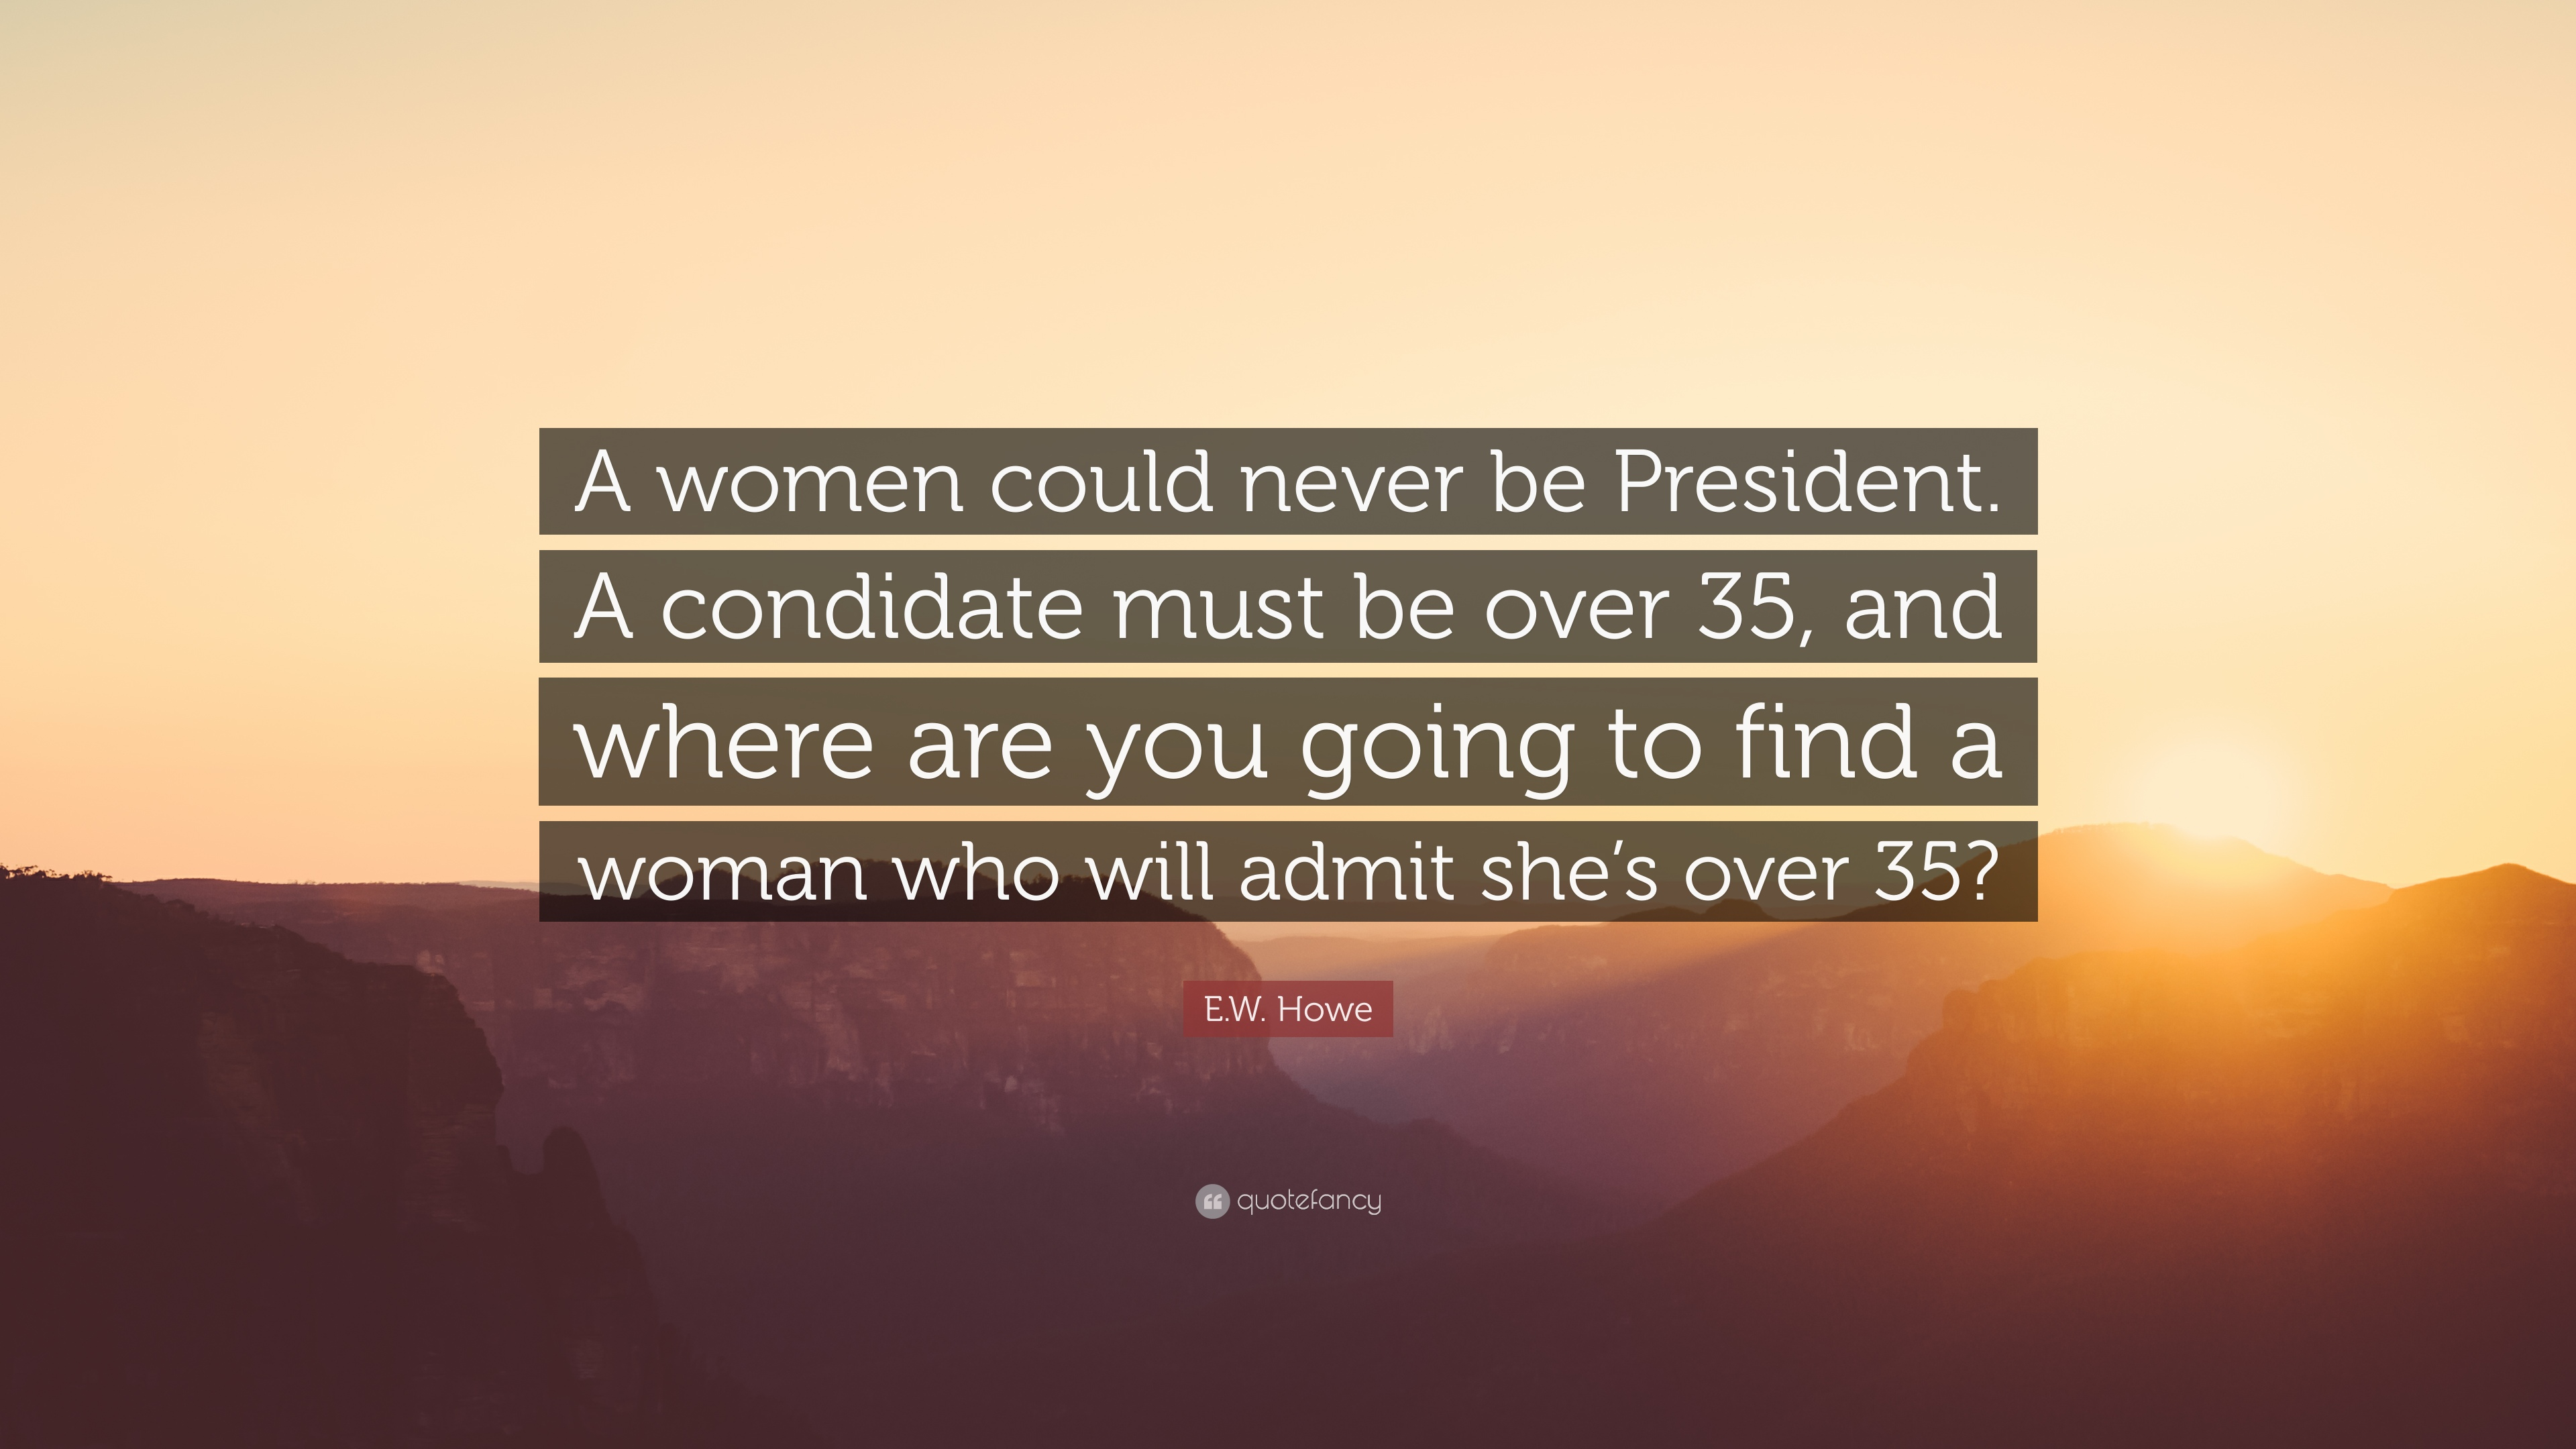 Where to find a woman